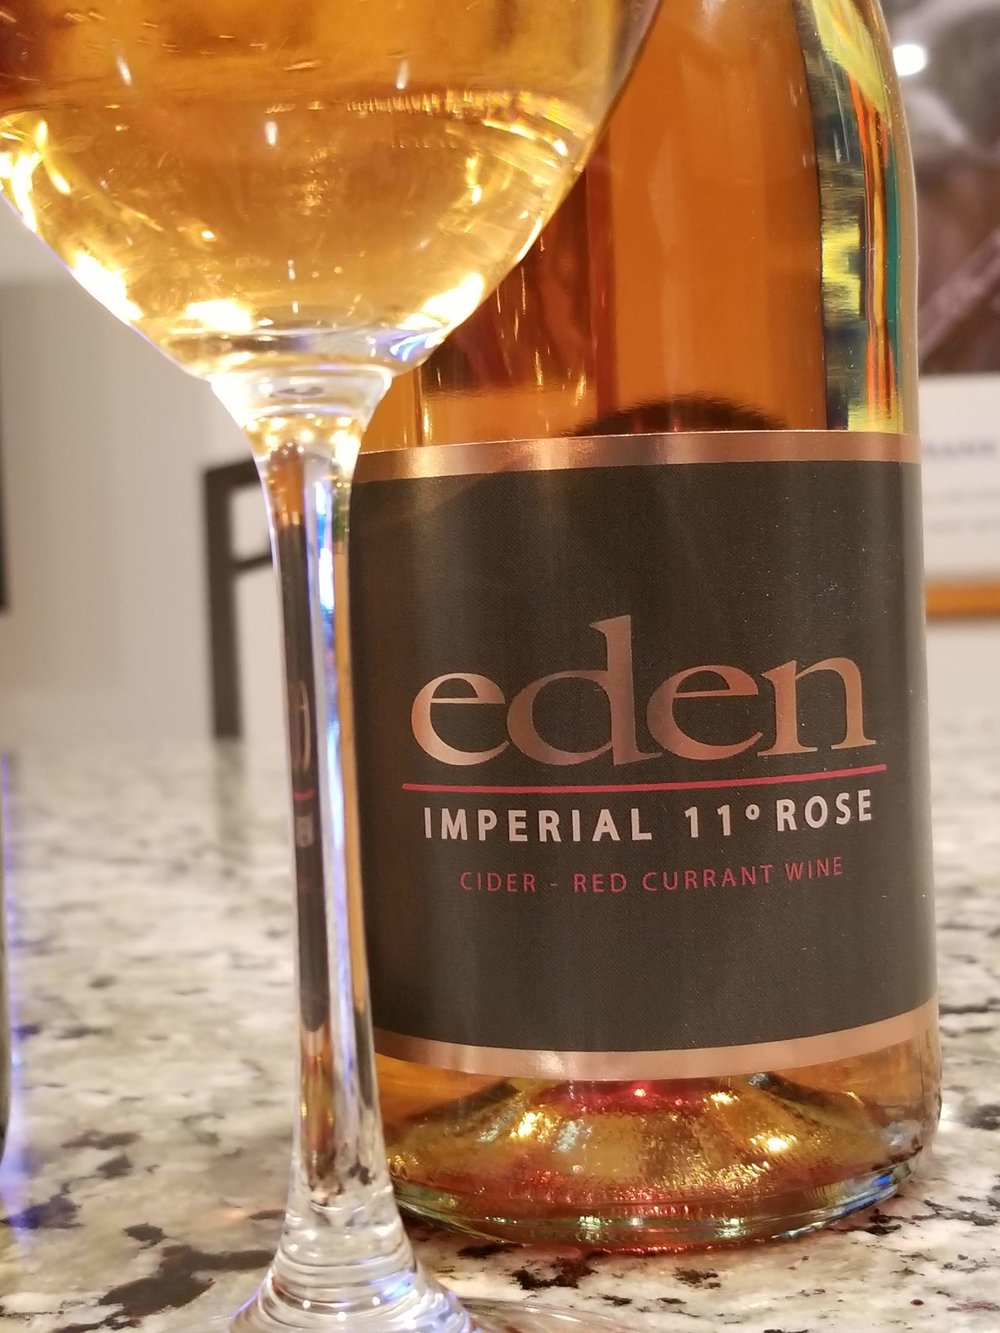 Imperial 11° Rosé - This cider rosé drinks like a wine. Made from apples & red currants with no coloring or additives. The nose is full of strawberry, cherry with hints of spiced roses. So bright & flavorful with a full body. A natural sweetness that every palate will love.